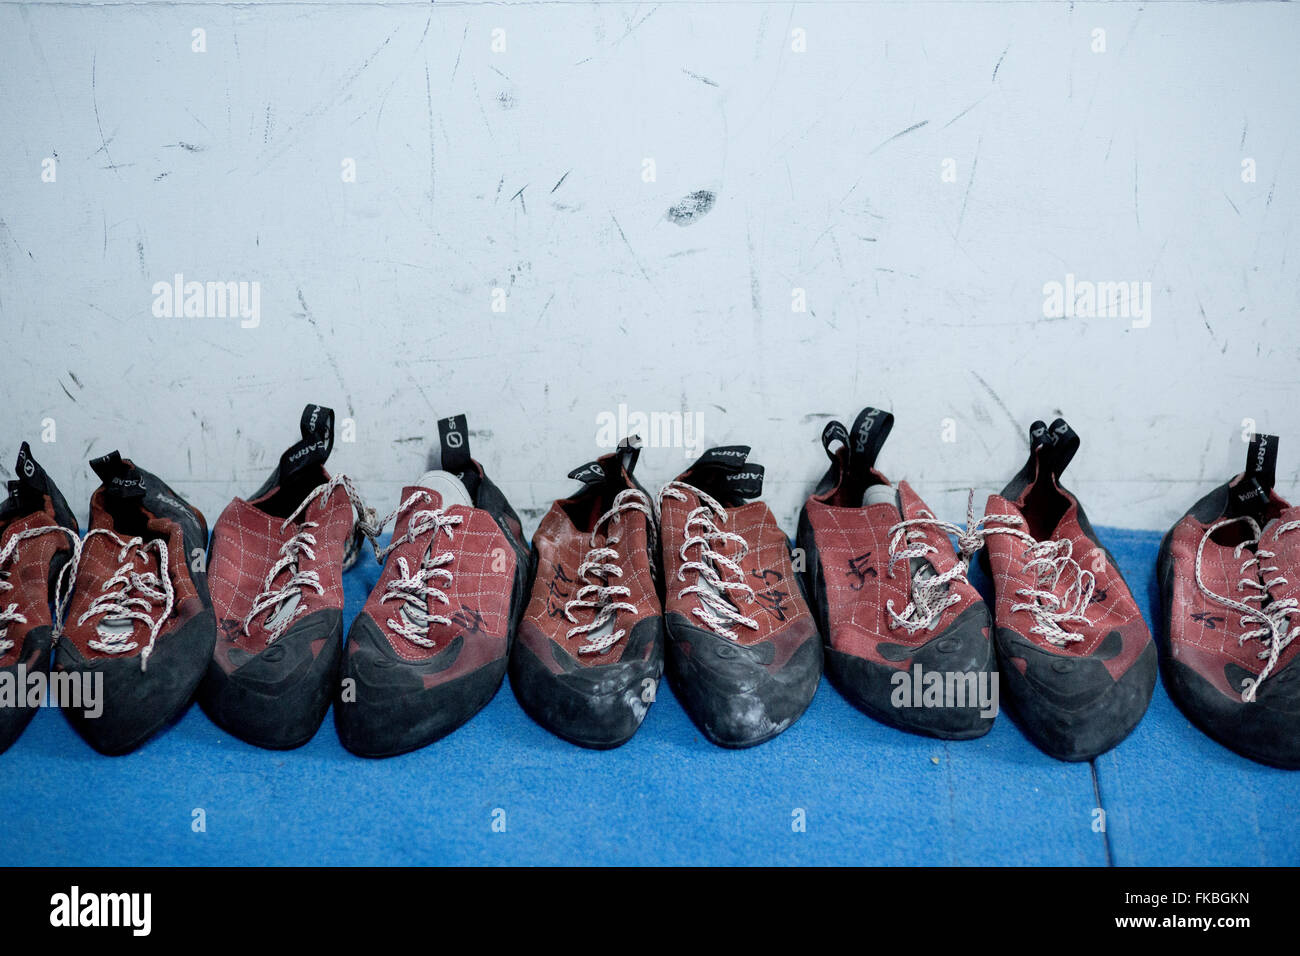 A row of climbing shoes a bouldering competition at The Climbing Academy, Bristol. - Stock Image